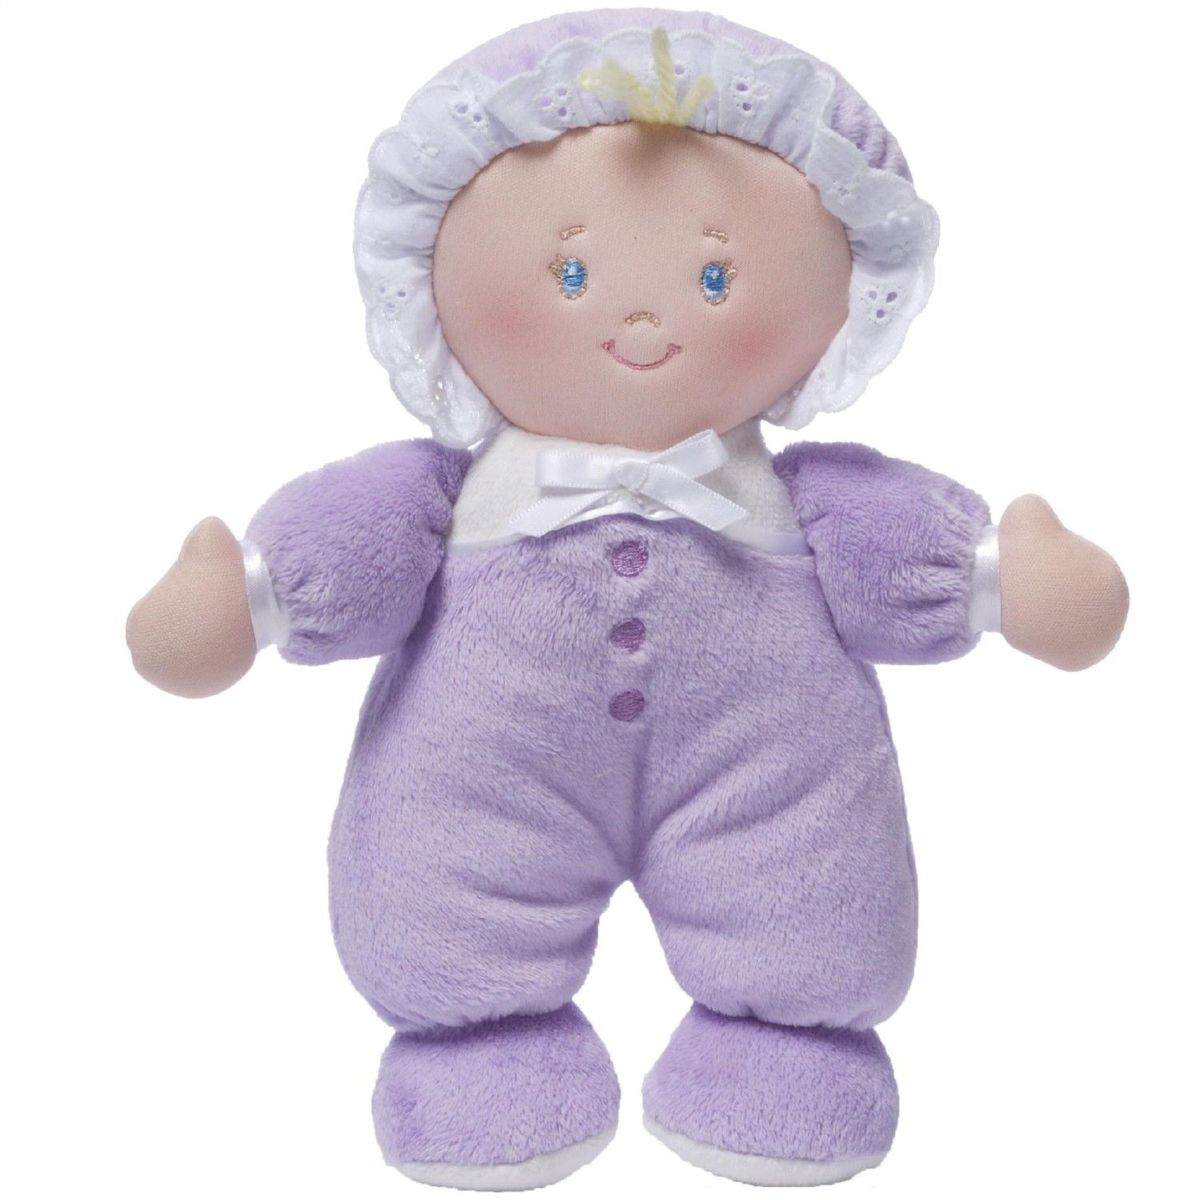 Gund Мягкая кукла Lillie Doll мягкая игрушка gund doll berry sweet dolly 10 blonde doll